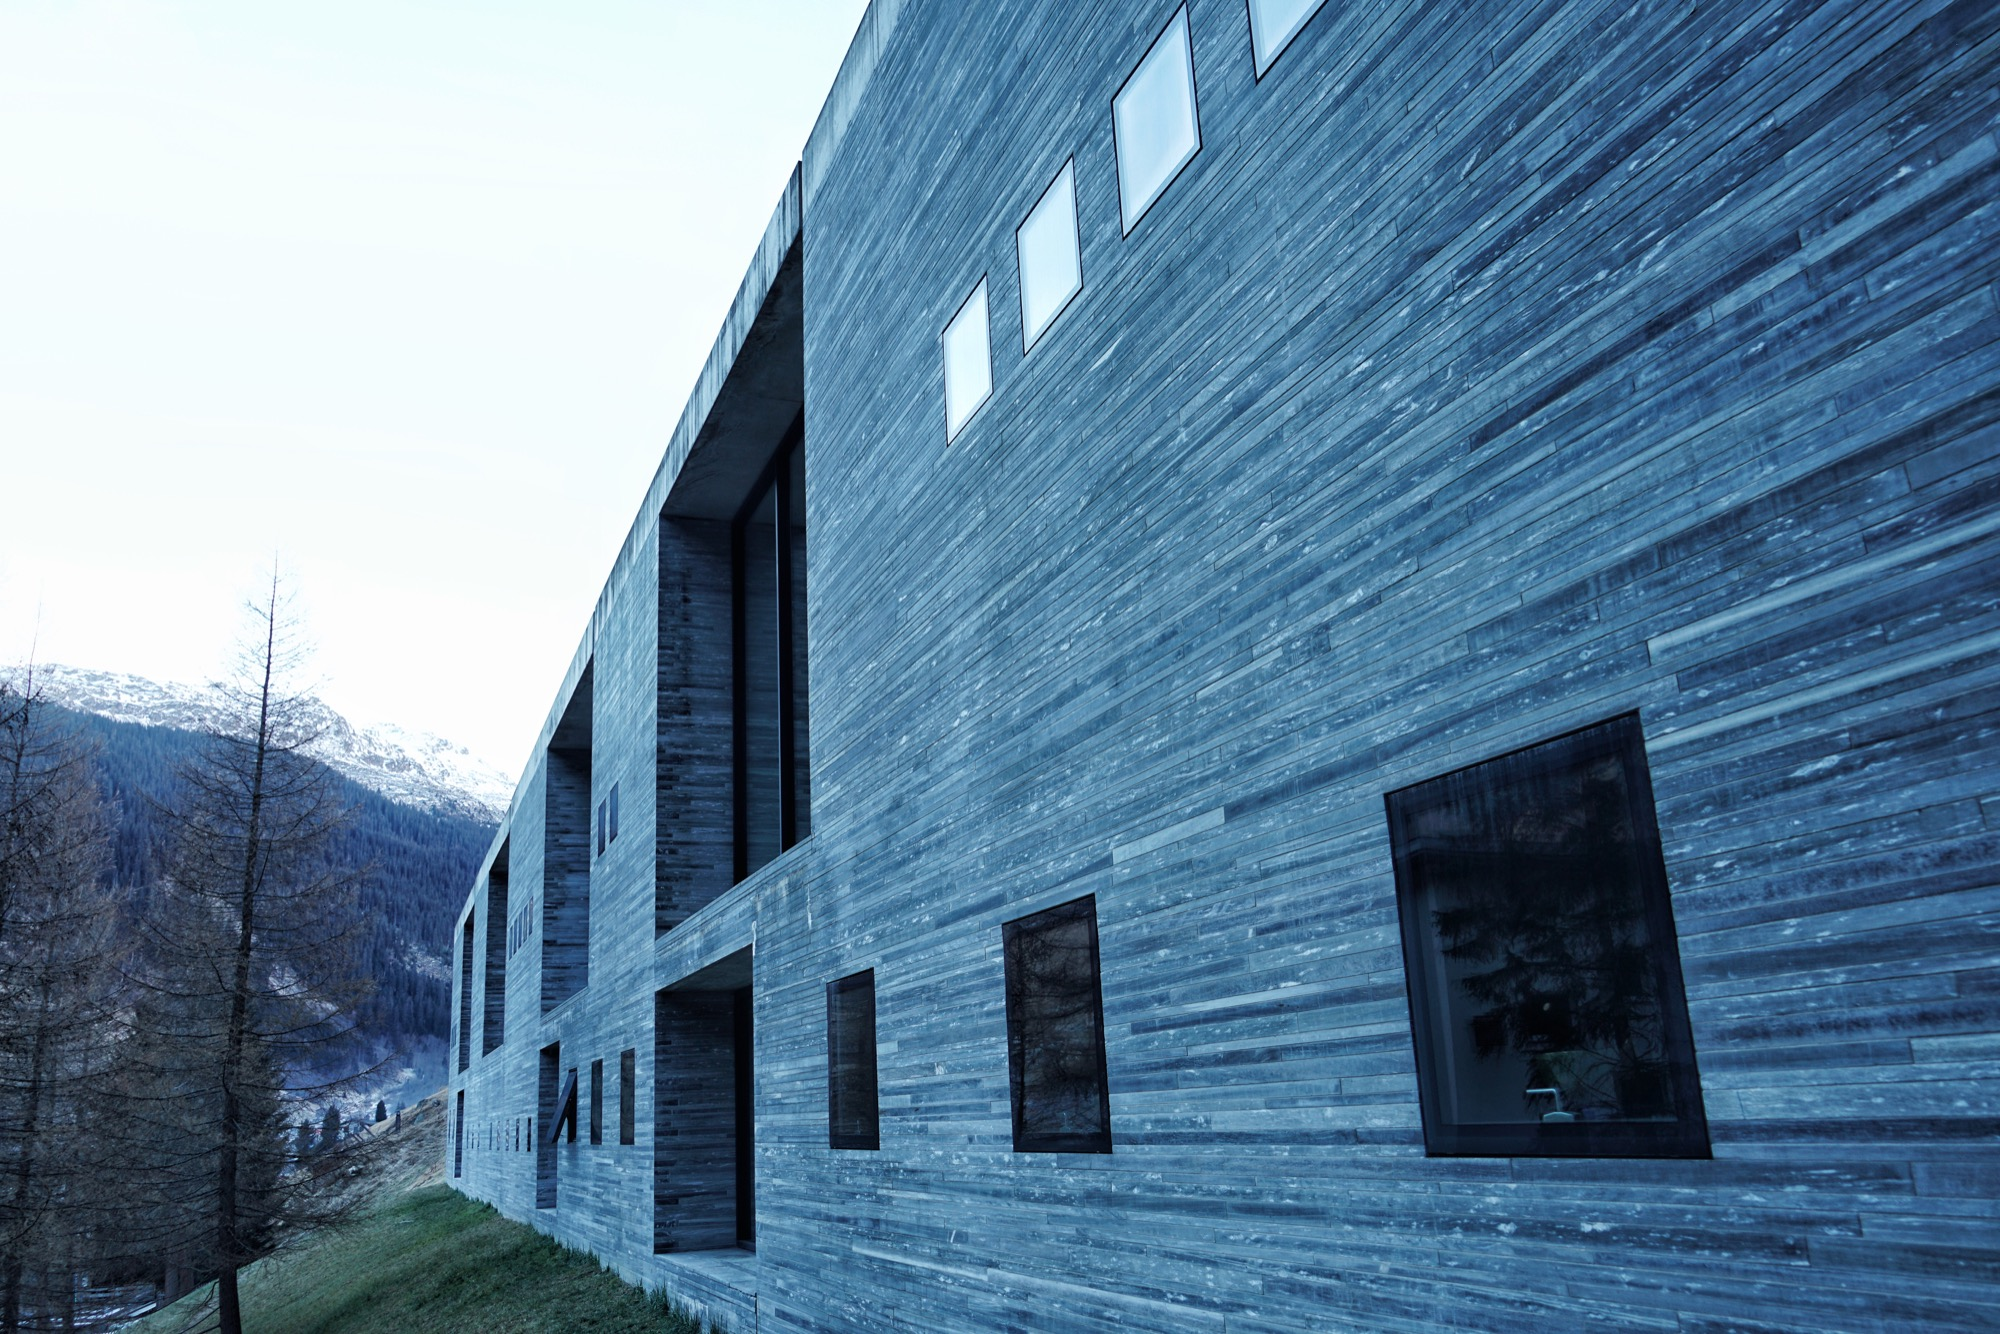 Peter Zumthor's minimalist thermal baths of Vals / Photo by Jonathan Ducrest